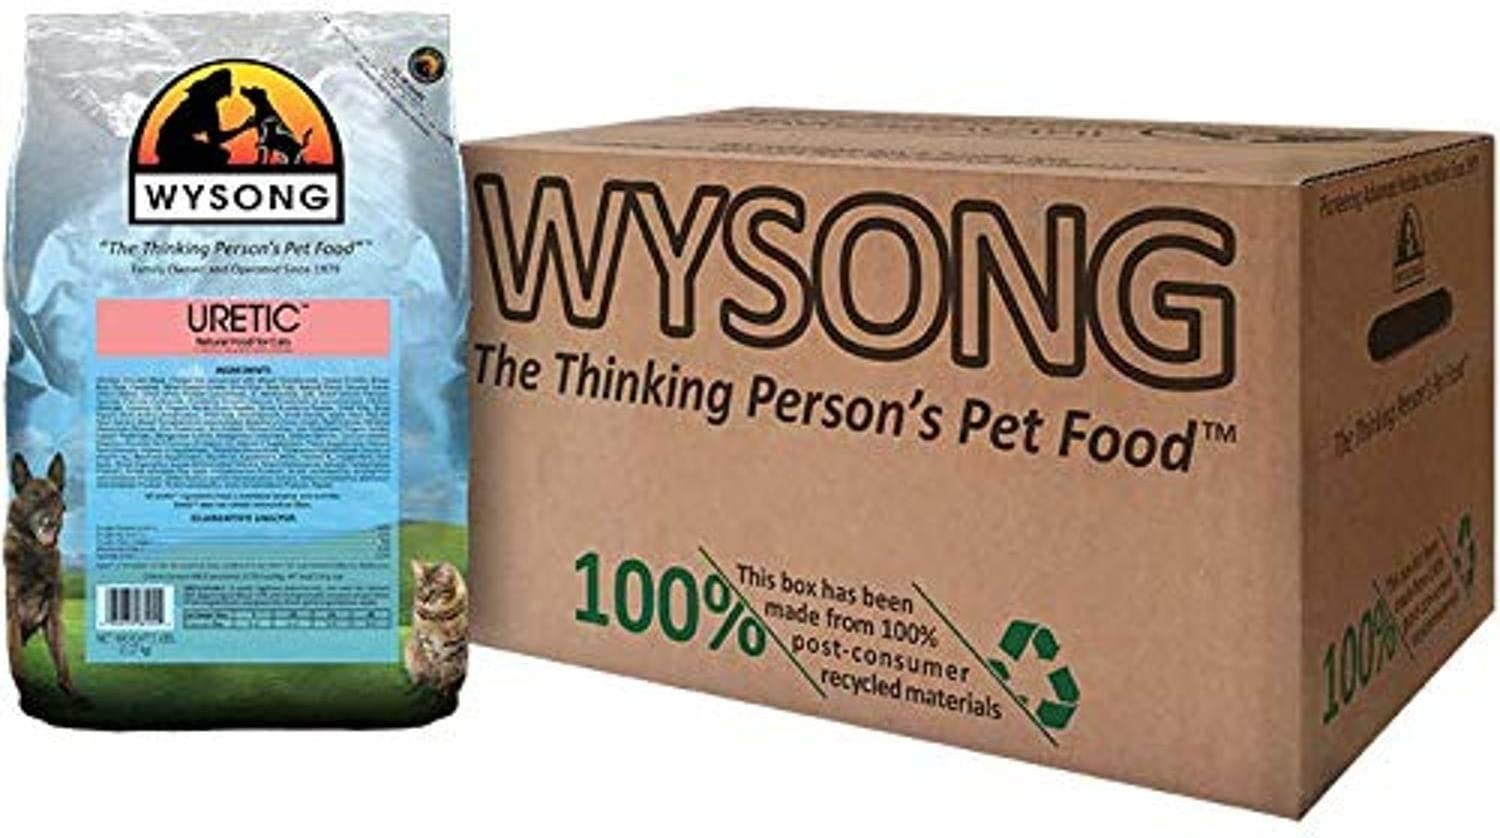 Wysong Uretic - Dry Natural Food for Cats